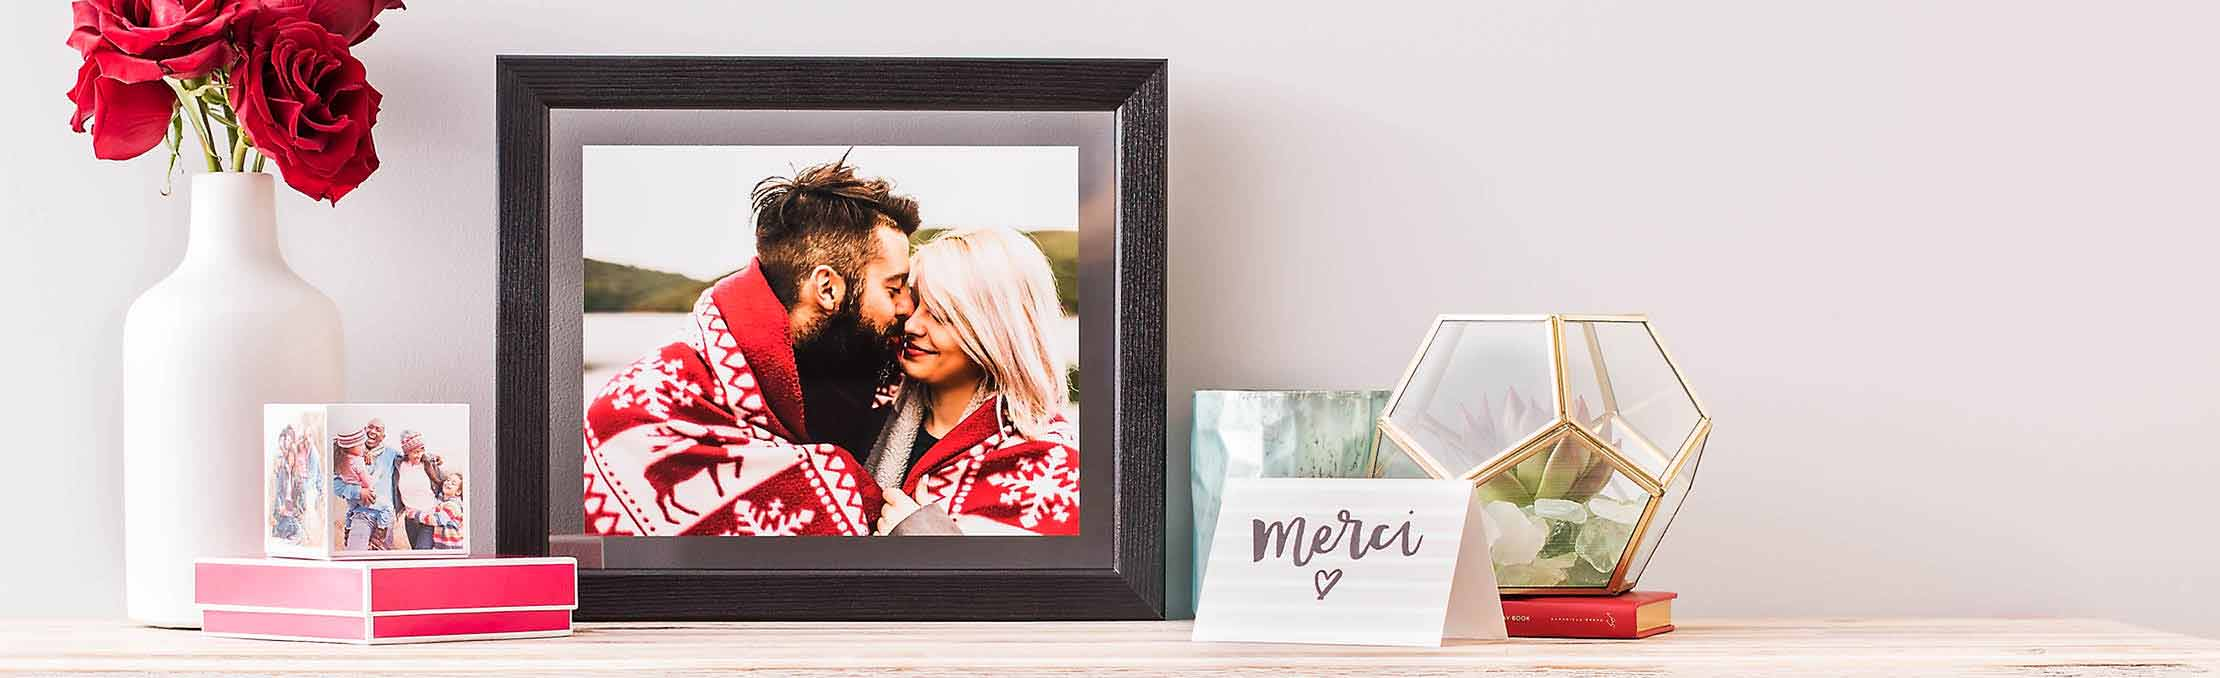 Valentine S Day Photo Gift Ideas For Everyone Walgreens Photo Blog